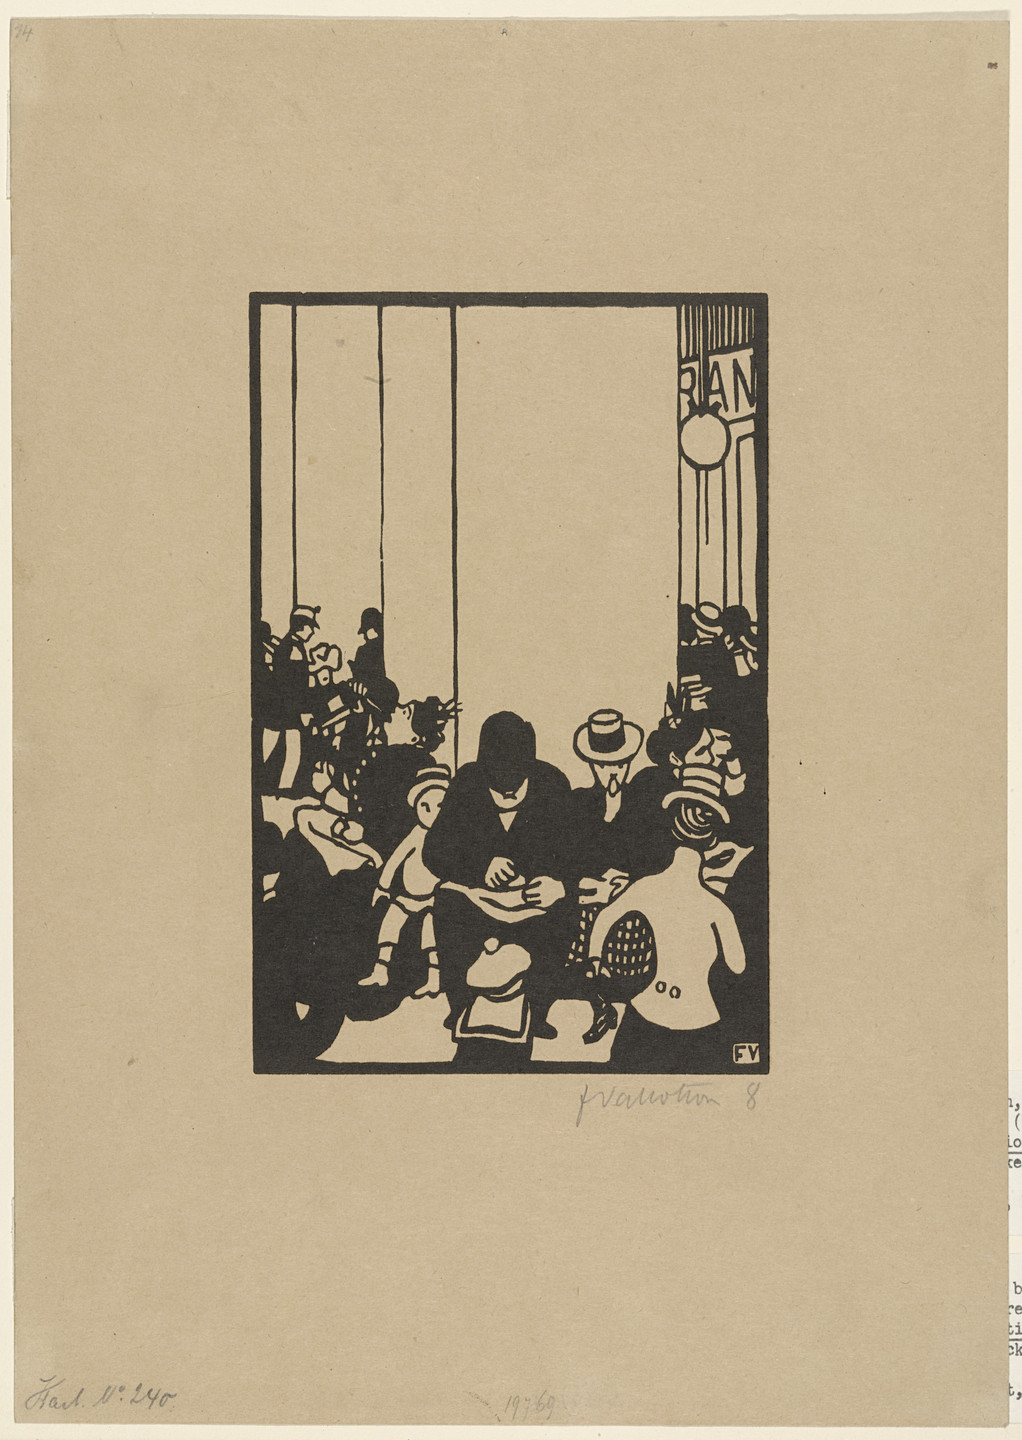 Félix Vallotton. Five O'Clock (plate IV) from The World's Fair (L'Exposition Universelle). 1901